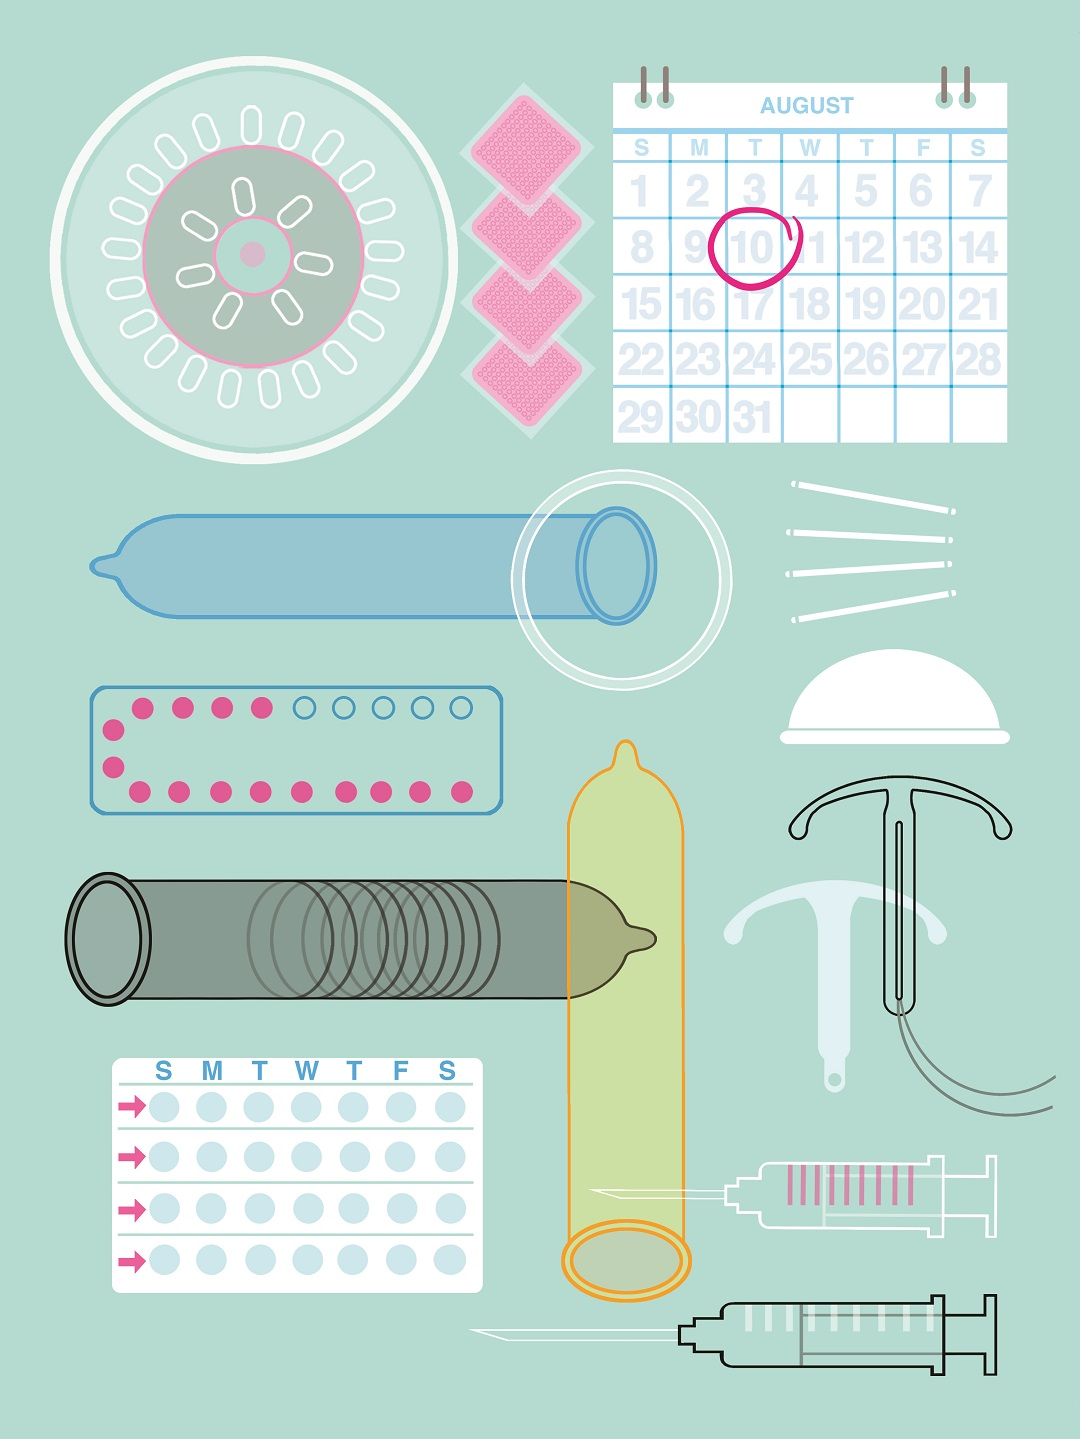 Birth Control Illustration